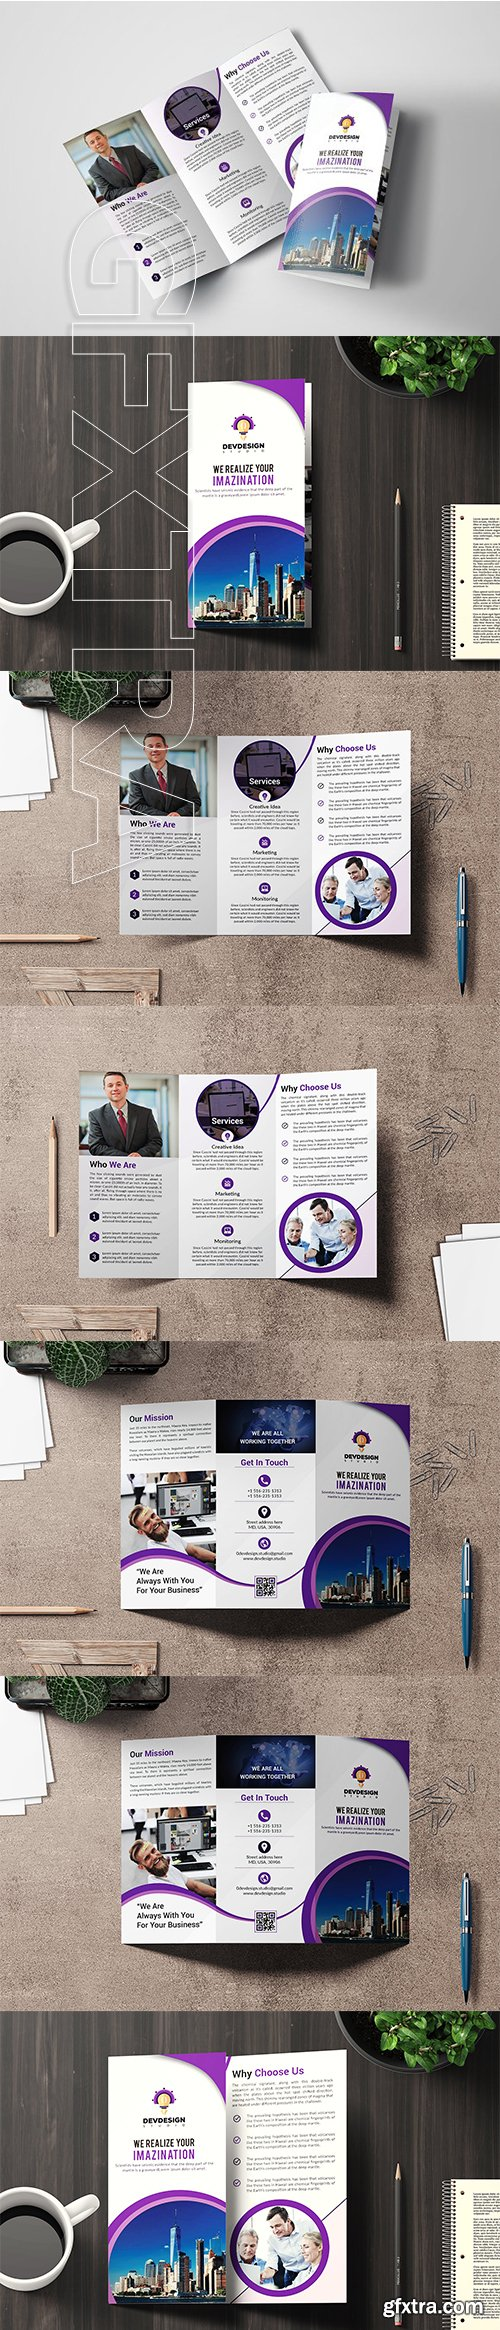 CreativeMarket - Corporate Trifold Brochure Design 3309907